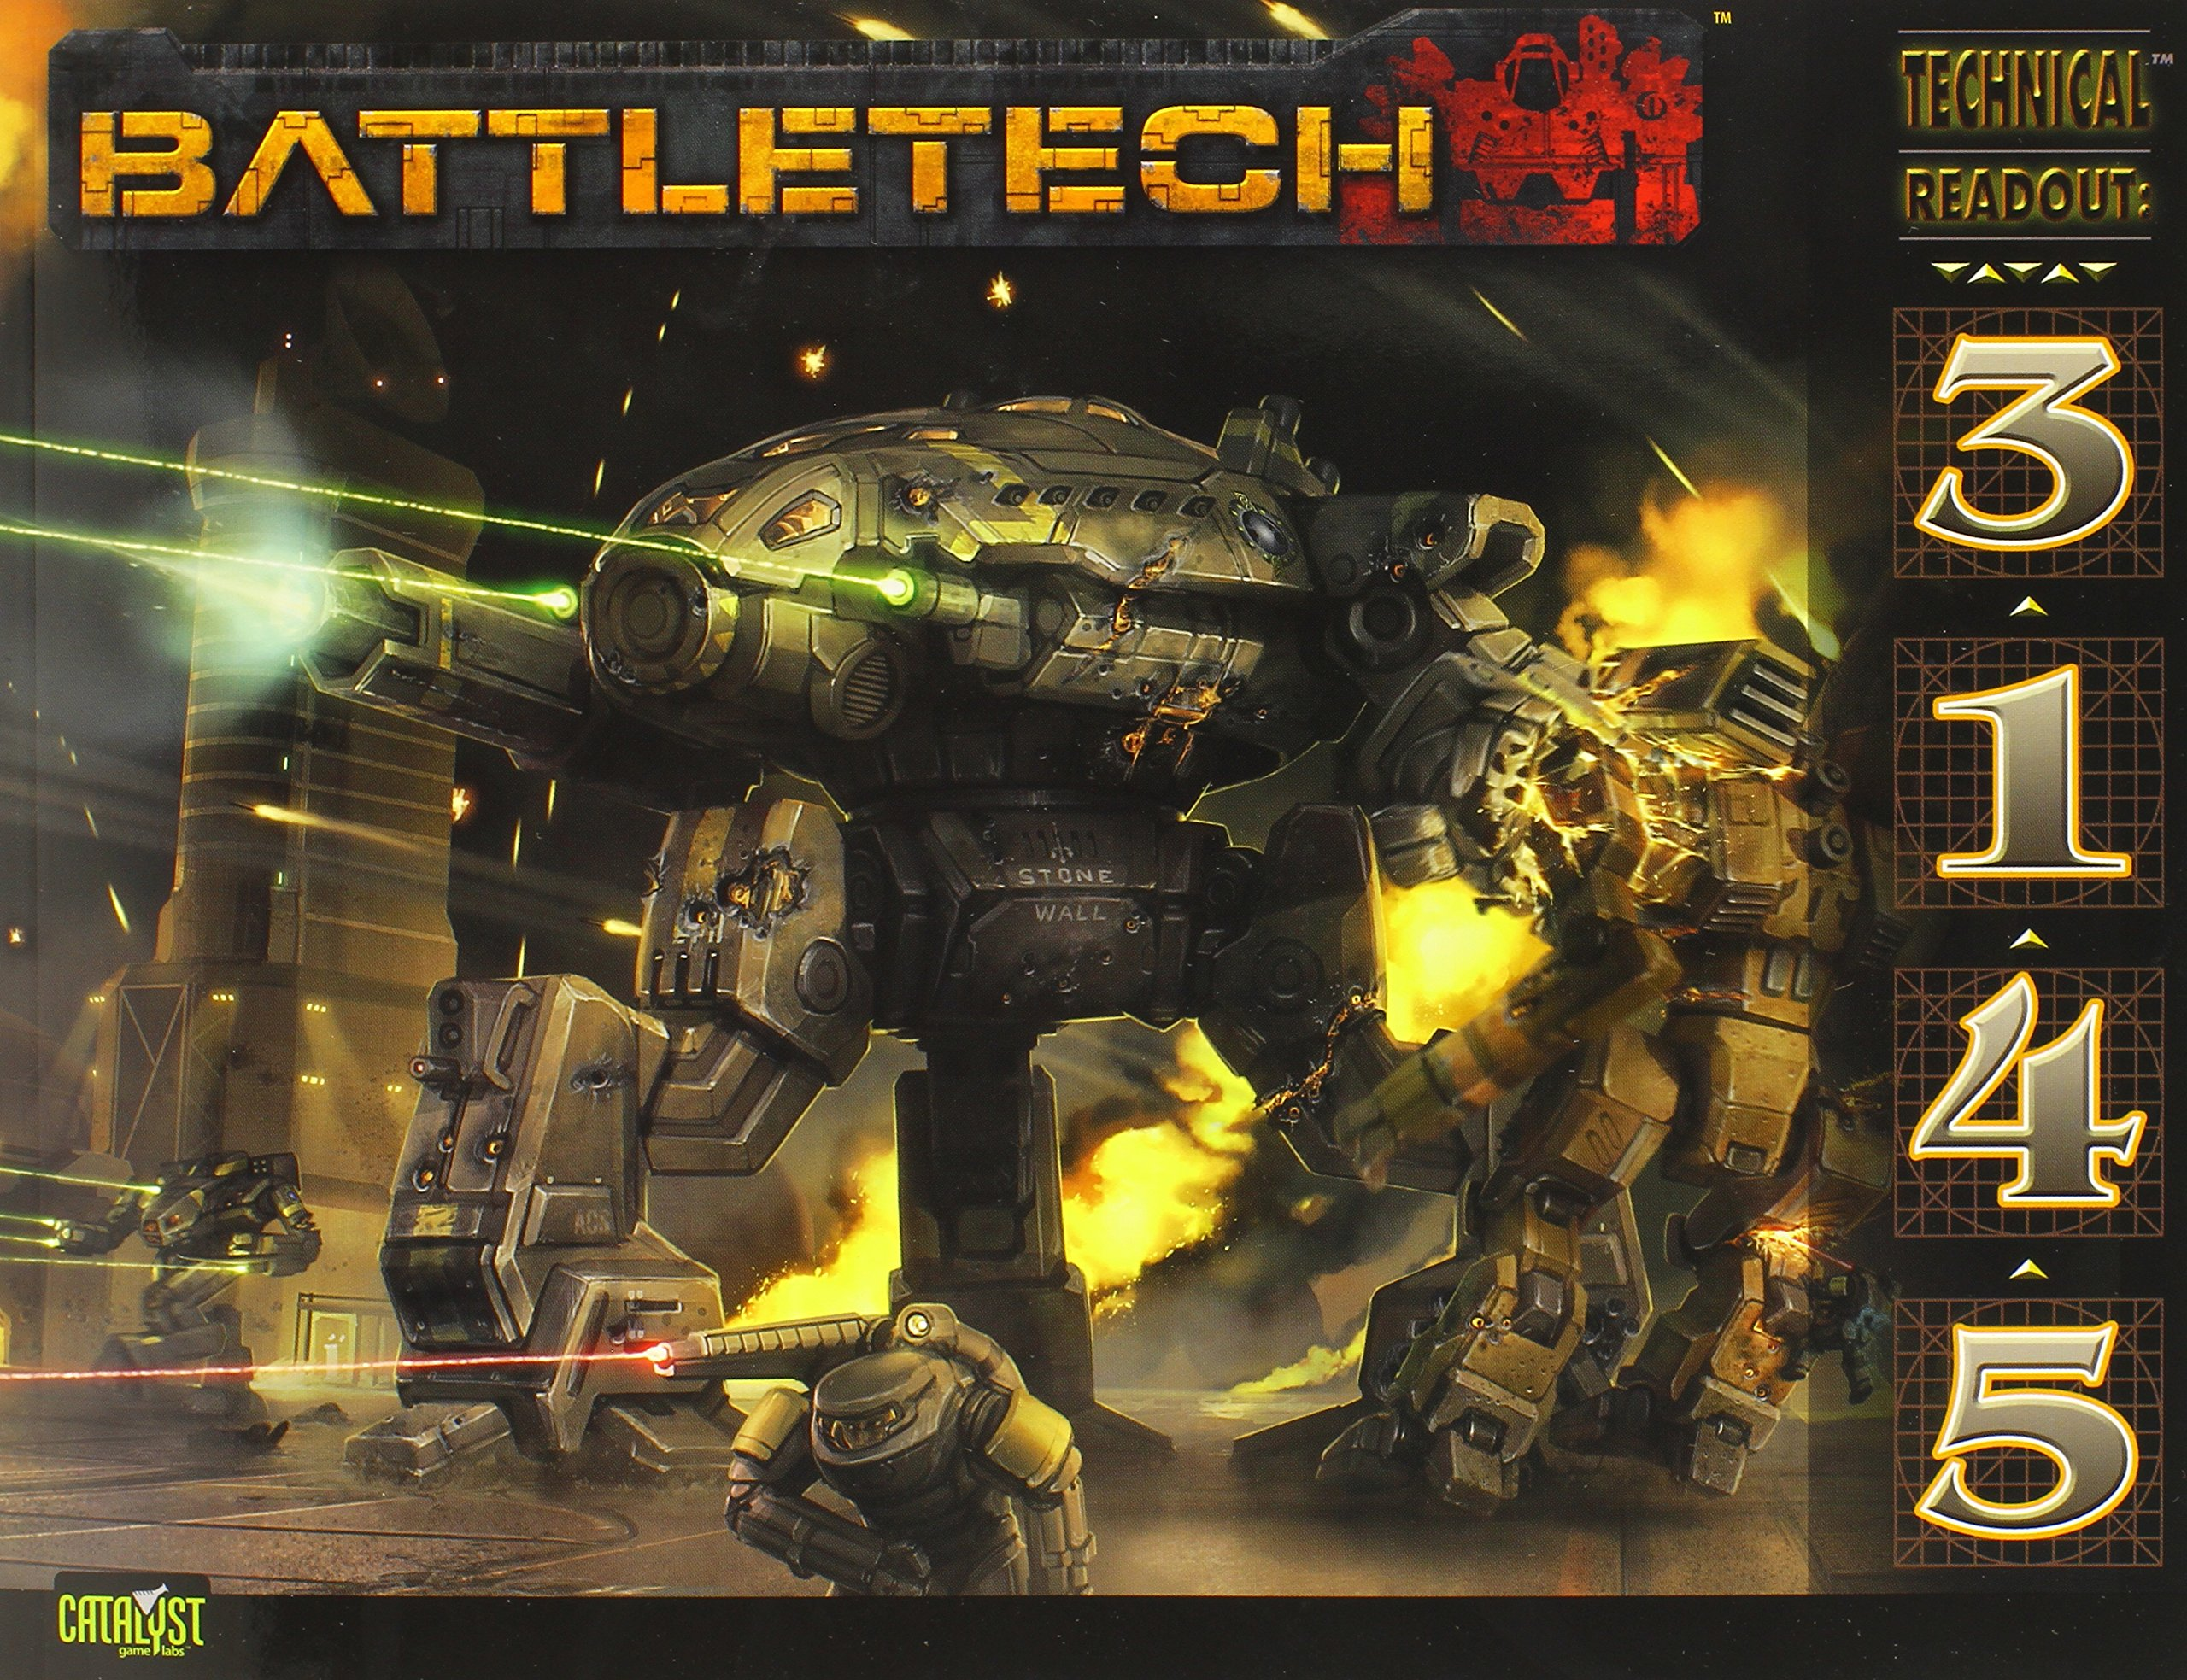 Battletech Technical Readout 2750 Pdf